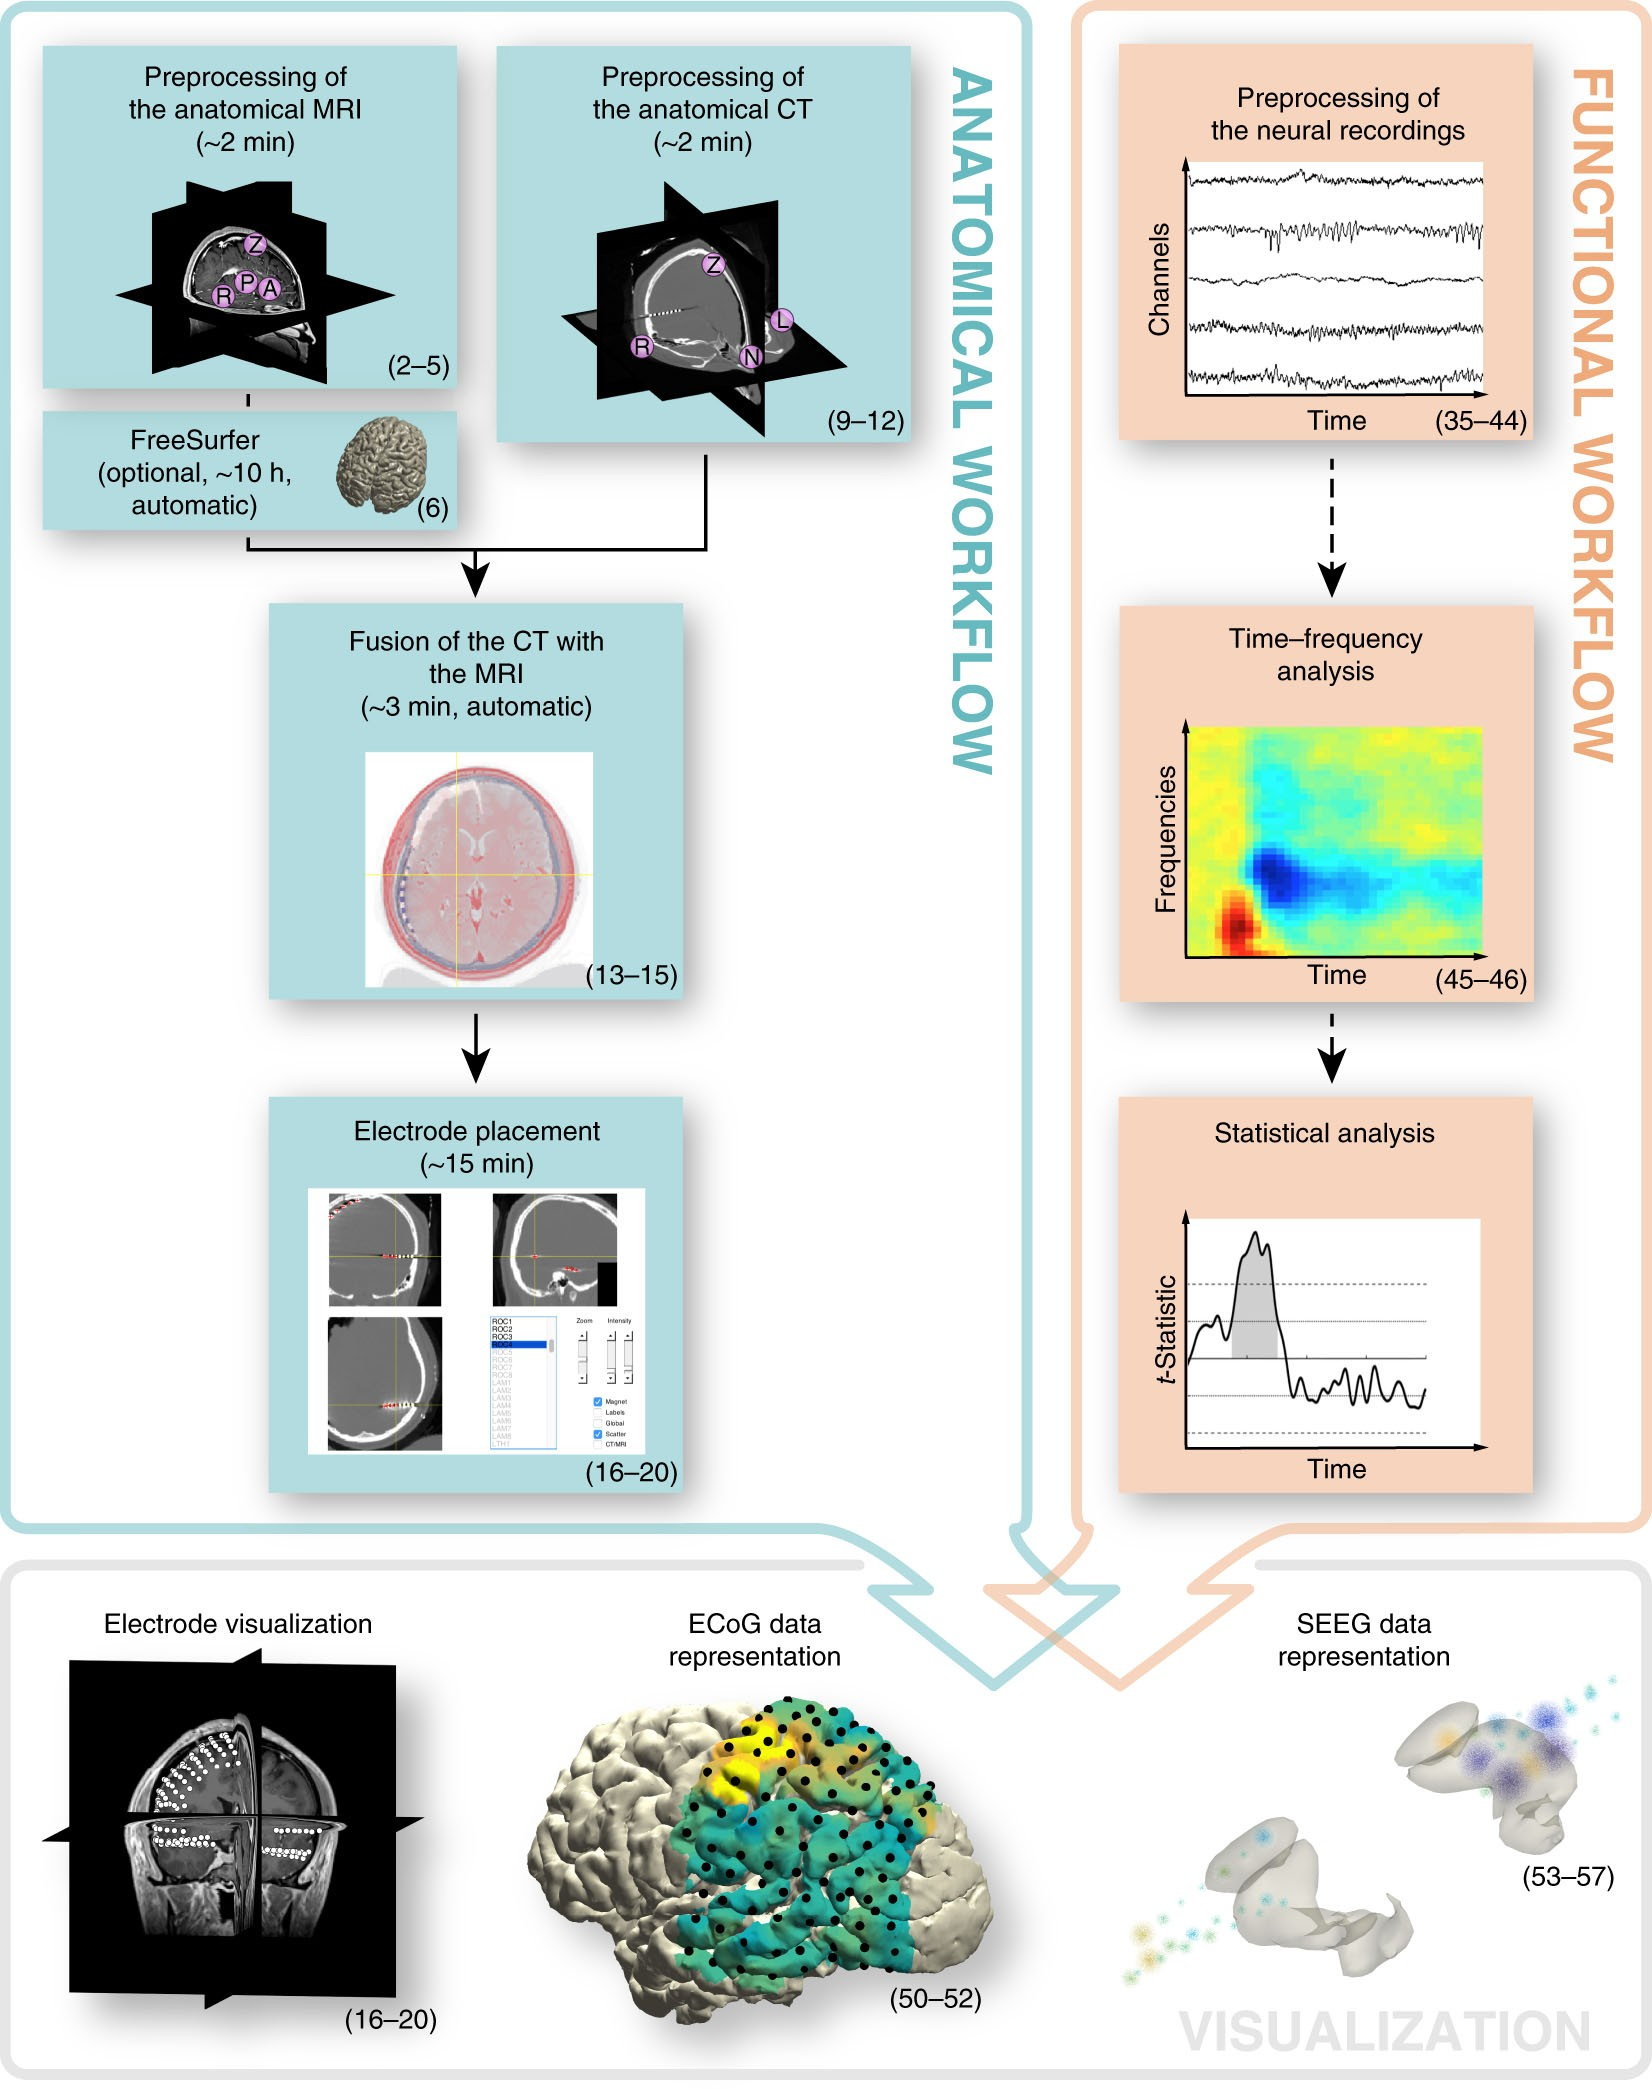 Integrated Analysis Of Anatomical And Electrophysiological Human